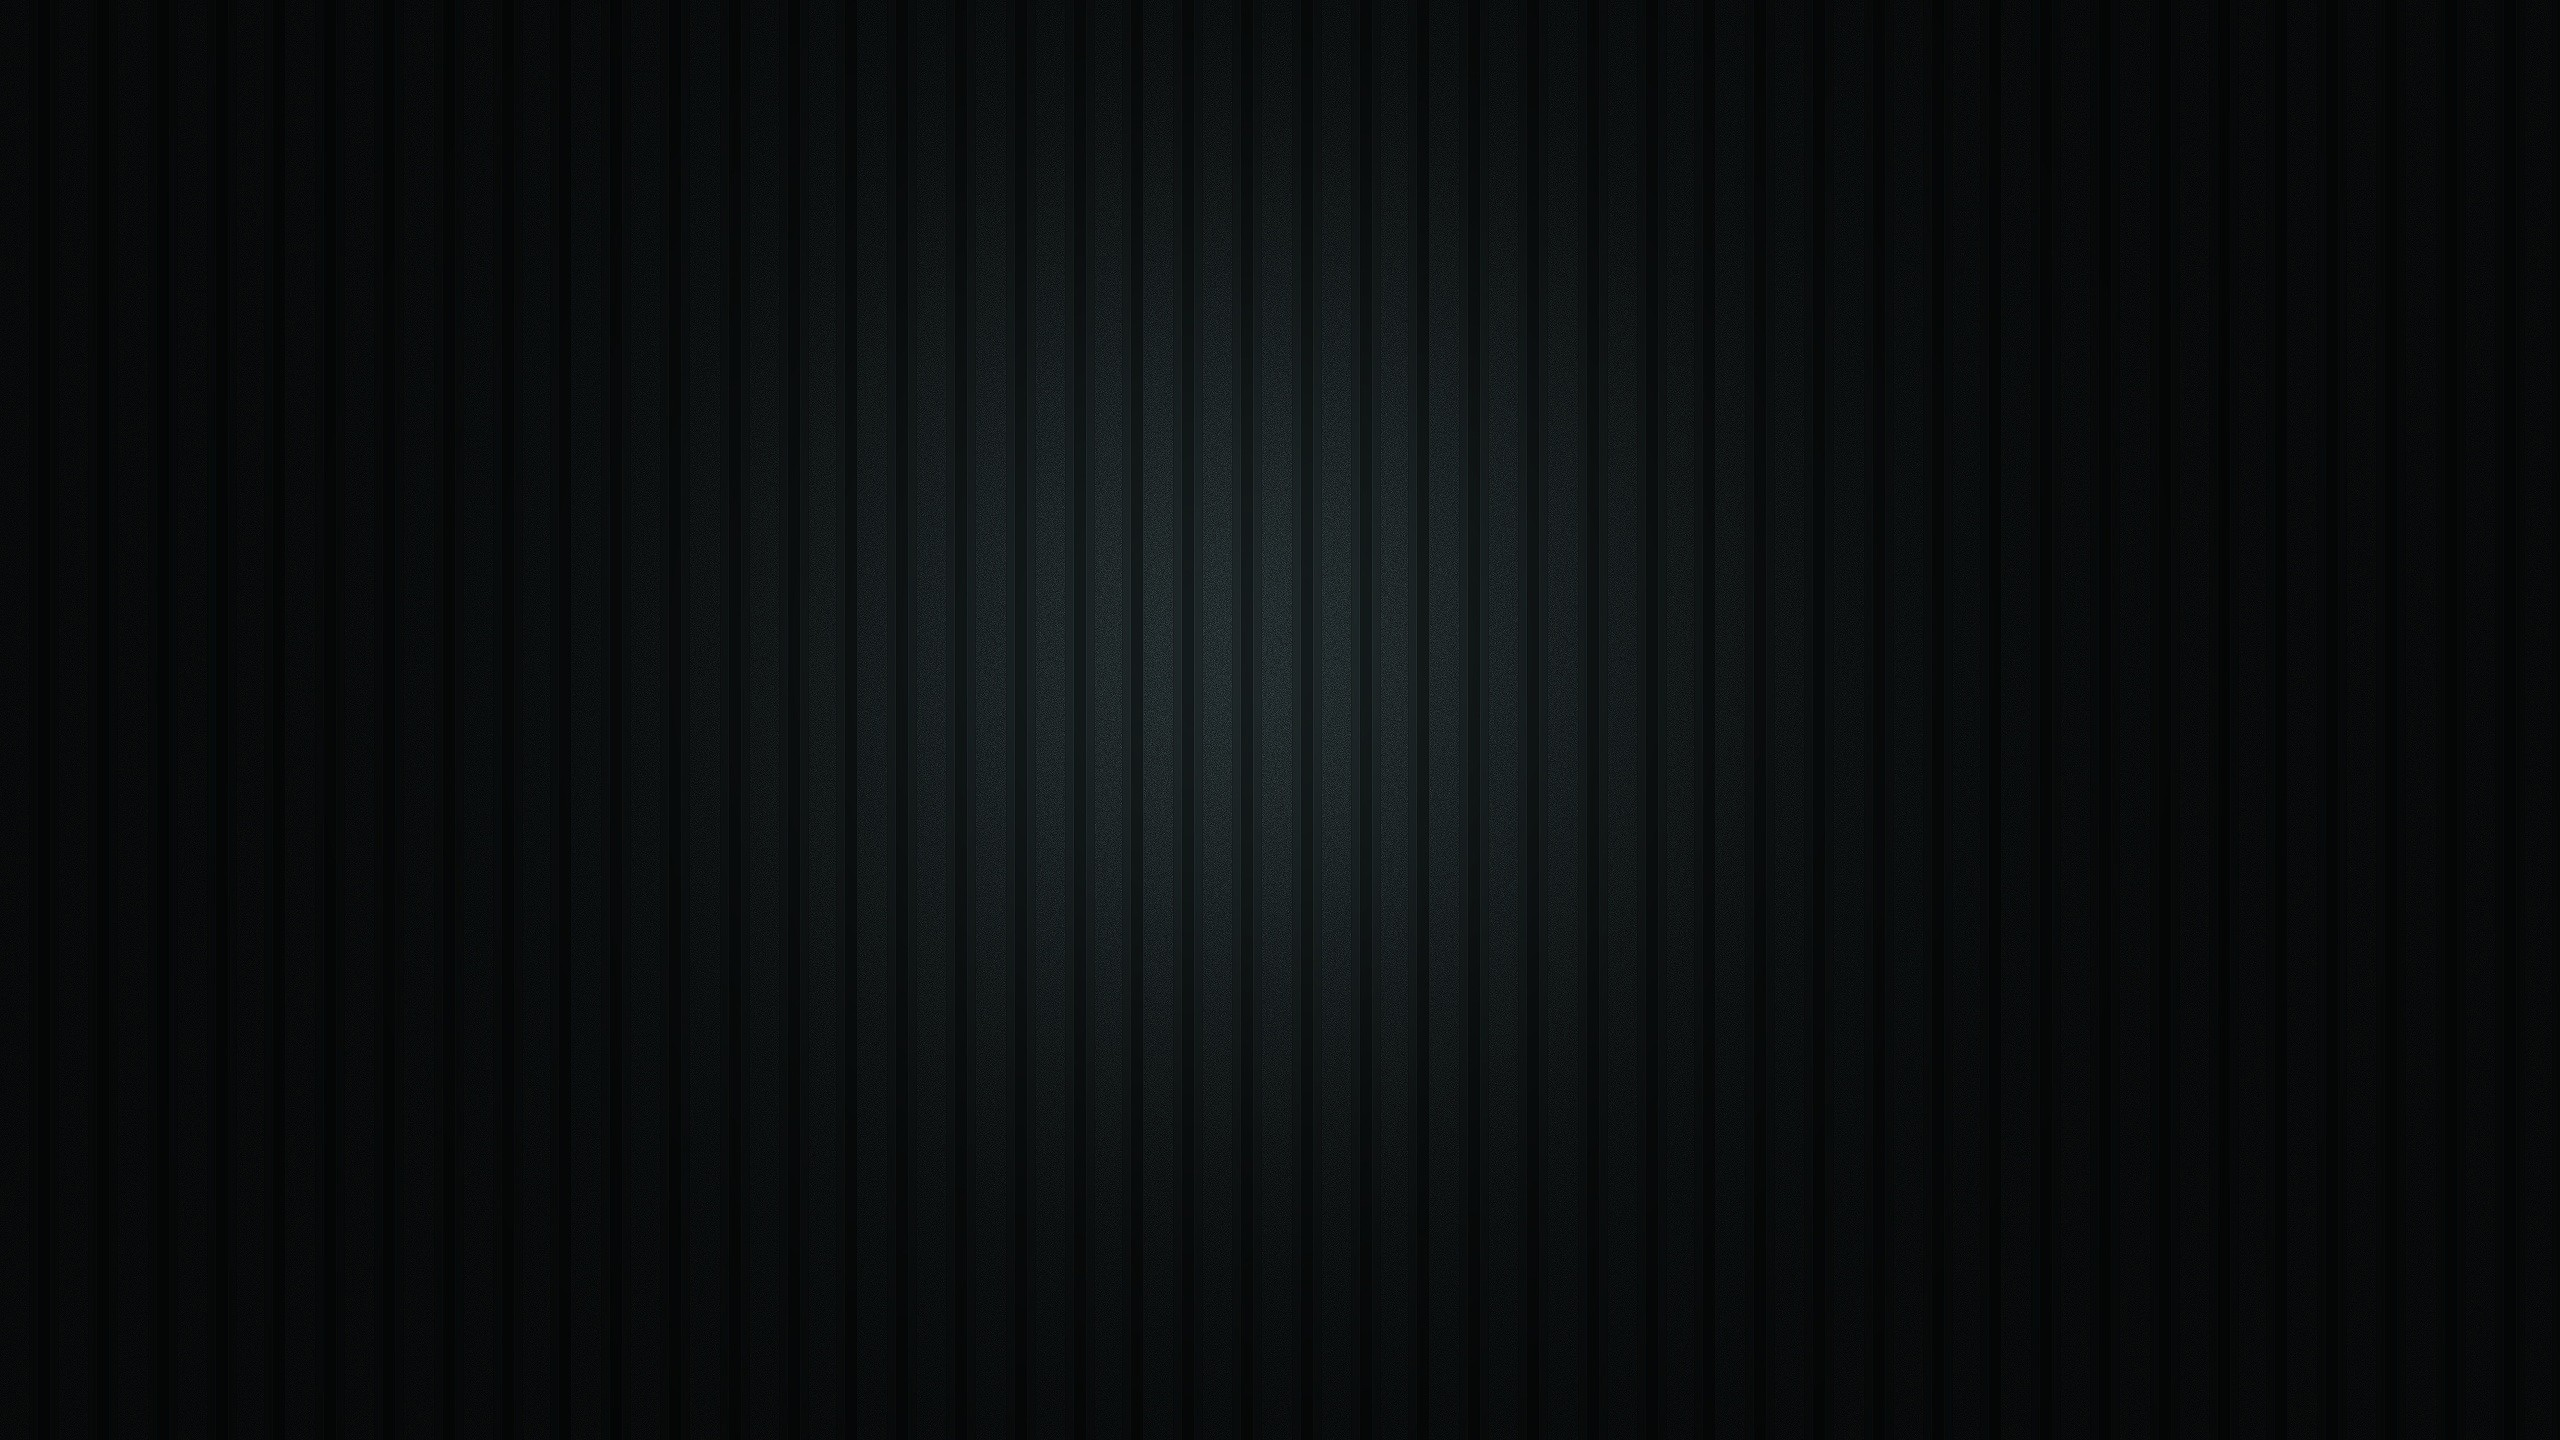 Plain Black Wallpapers HD (74+ images)